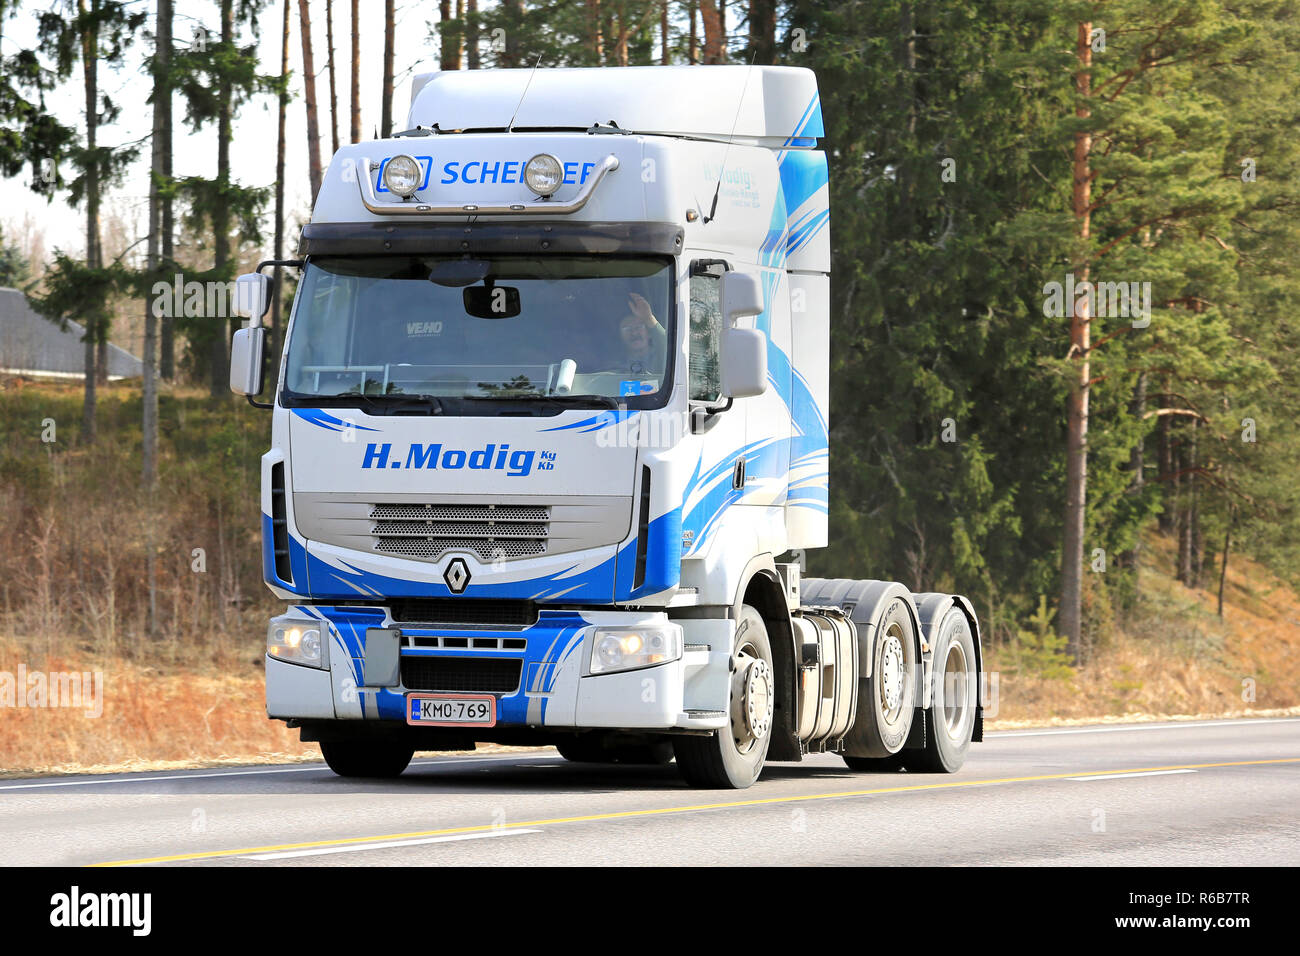 Salo, Finland - March 26, 2017: Blue and white Renault Premium truck of Helmer Modig Oy trucking along highway 52 on a sunny day of early spring. - Stock Image